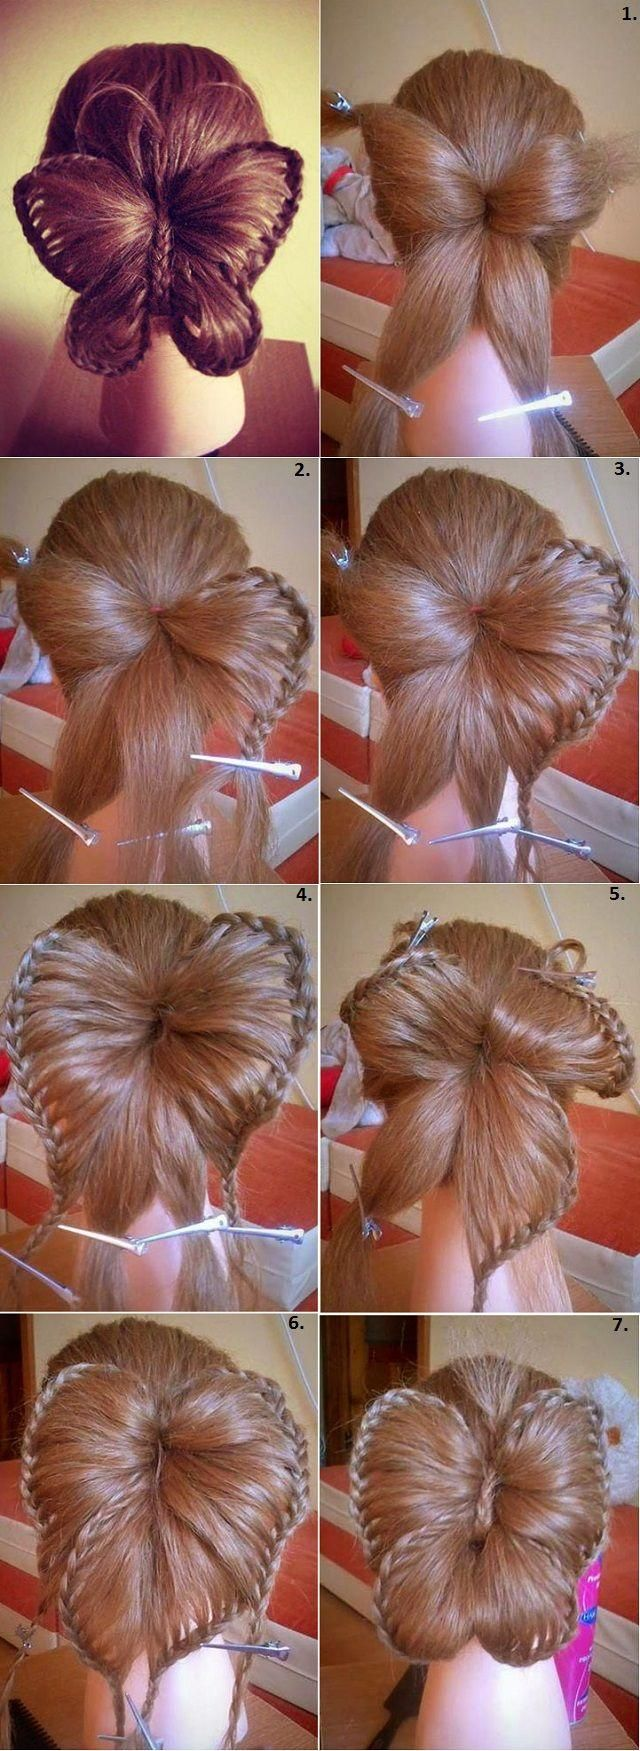 "Butterfly Hairstyle @Mindy Burton Burton Burton Burton Burton ""Cute Girls Hairstyles"" Could you please do a video tutorial for this hairstyle? My sisters are begging for it :) Thank you! Interesting"